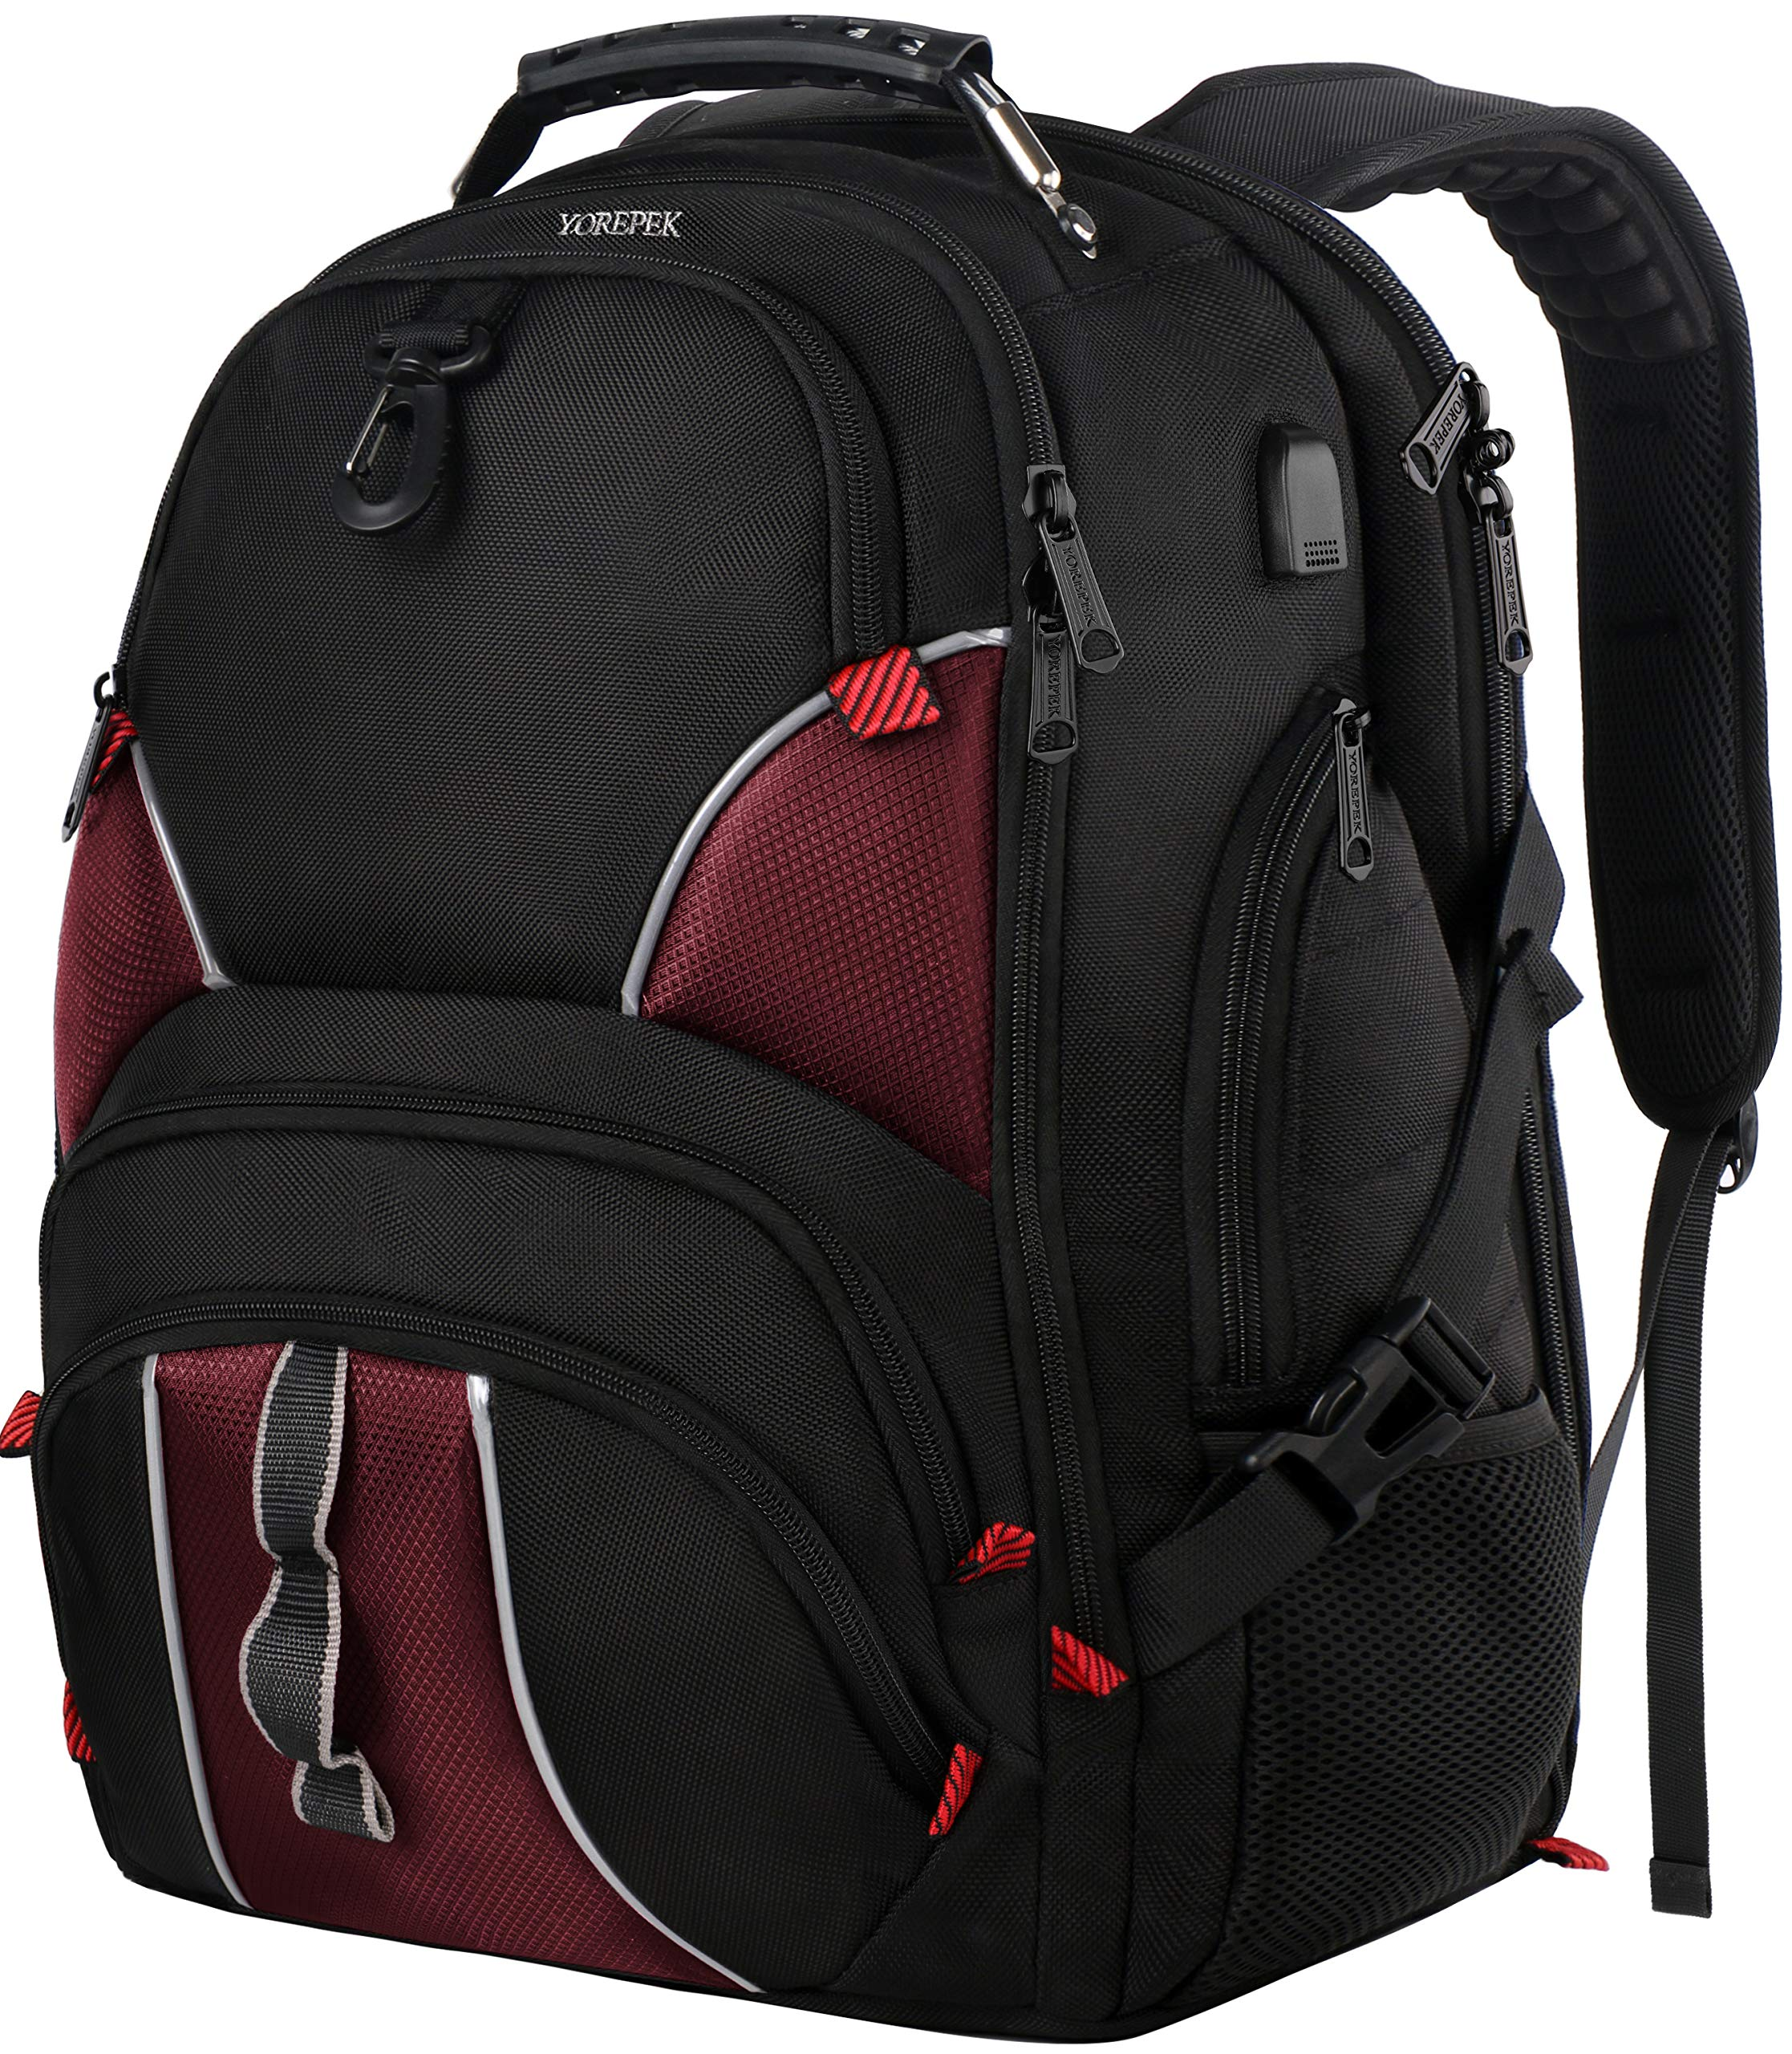 YOREPEK Extra Large Backpack,TSA Laptop Backpack with Luggage Sleeve,High School Backpack for Boys Girl,Large College Backpack with Laptop Compartment for Men Wowen,17 Inch Travel Laptop Backpack,Red by YOREPEK